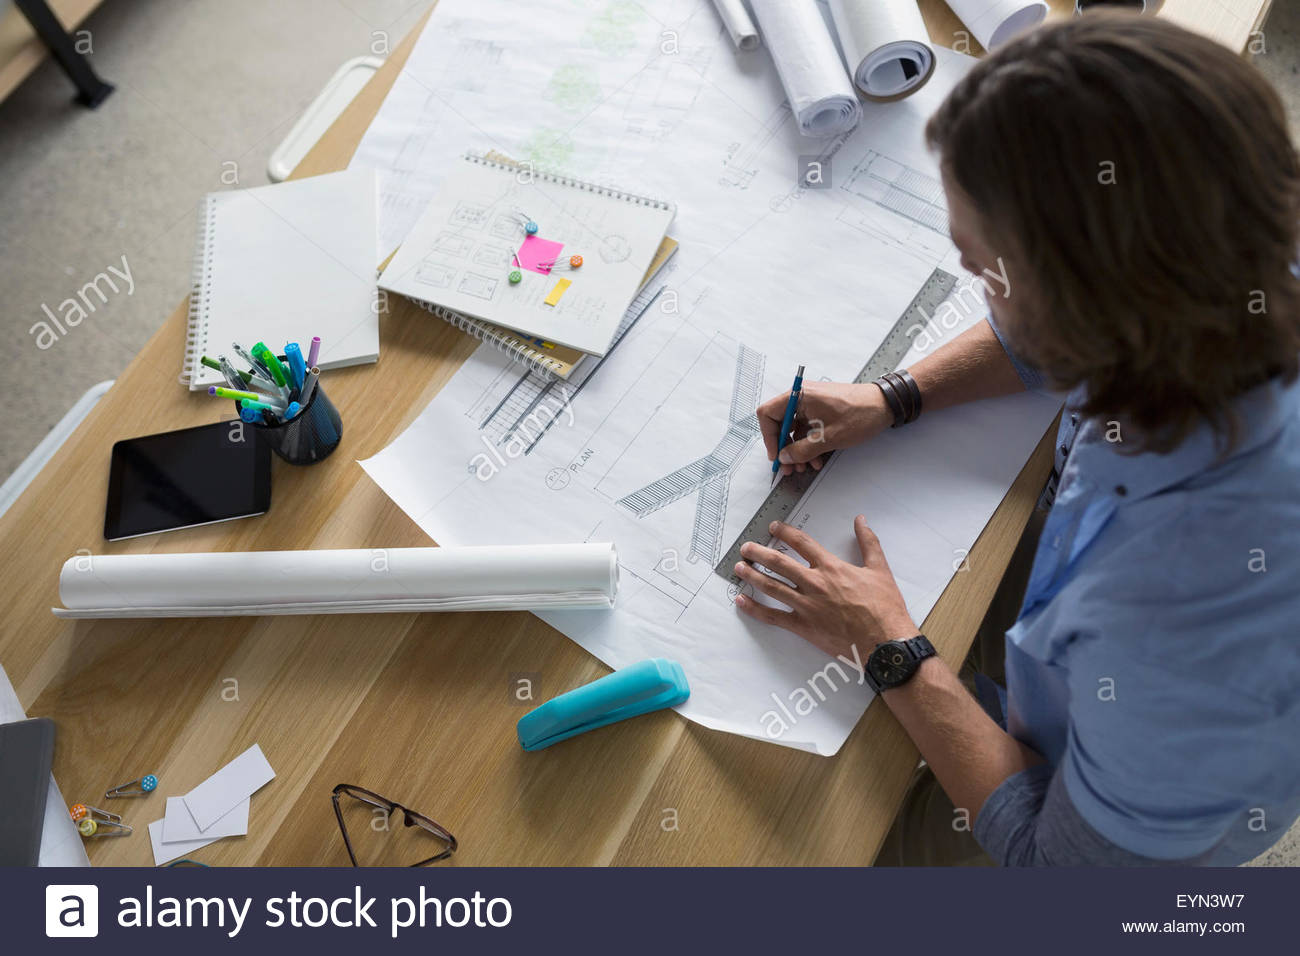 Overhead view of architect drafting blueprints at table - Stock Image